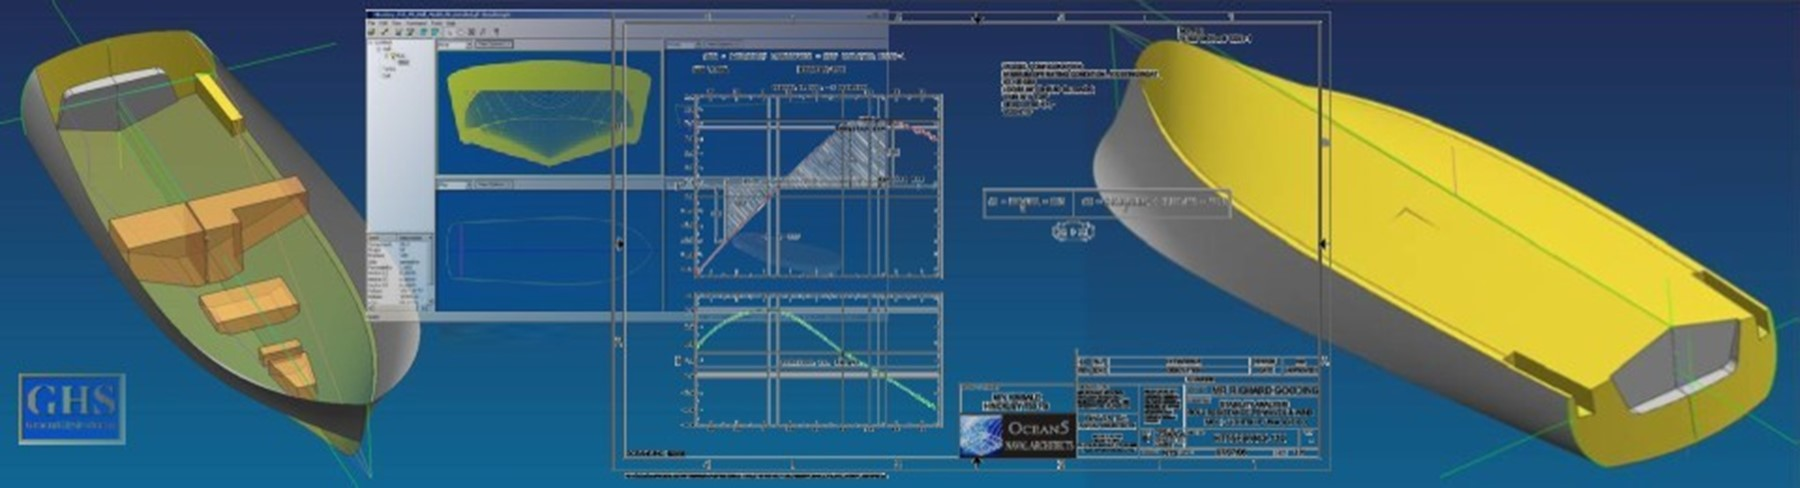 Stability Analysis | Ocean5 | Naval Architects & Yacht